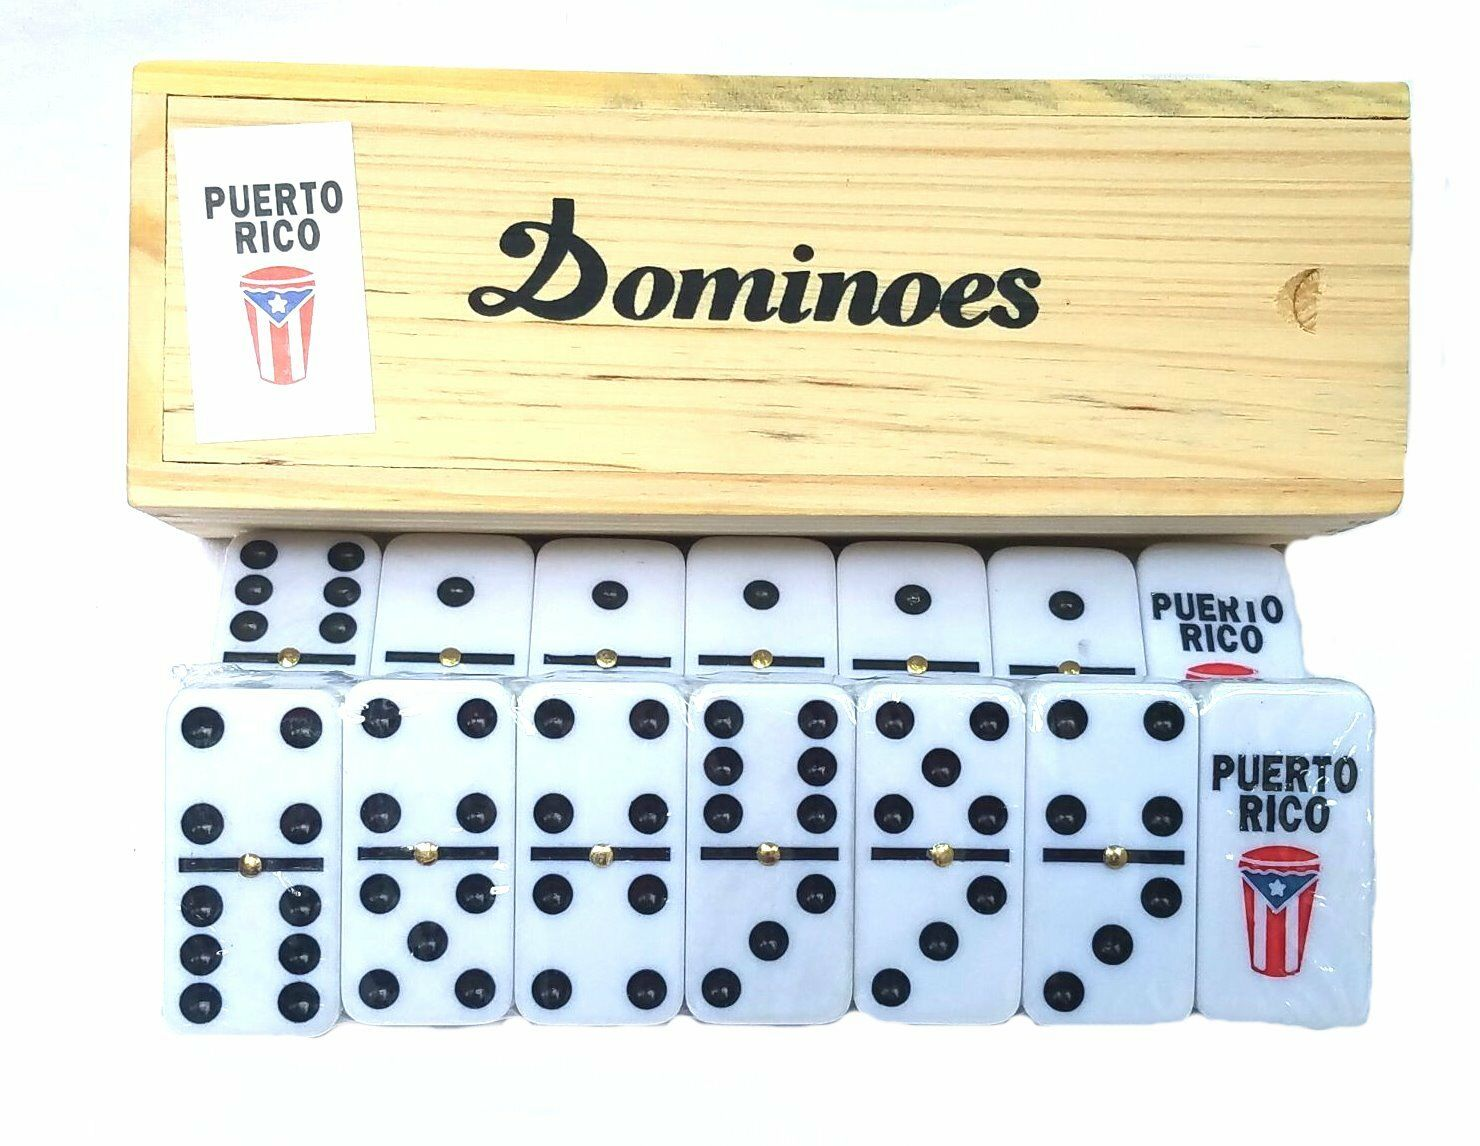 TRAVEL SIZE * Lot of 12 Puerto Rico Guiro Double Six Dominos Dominoes Rican